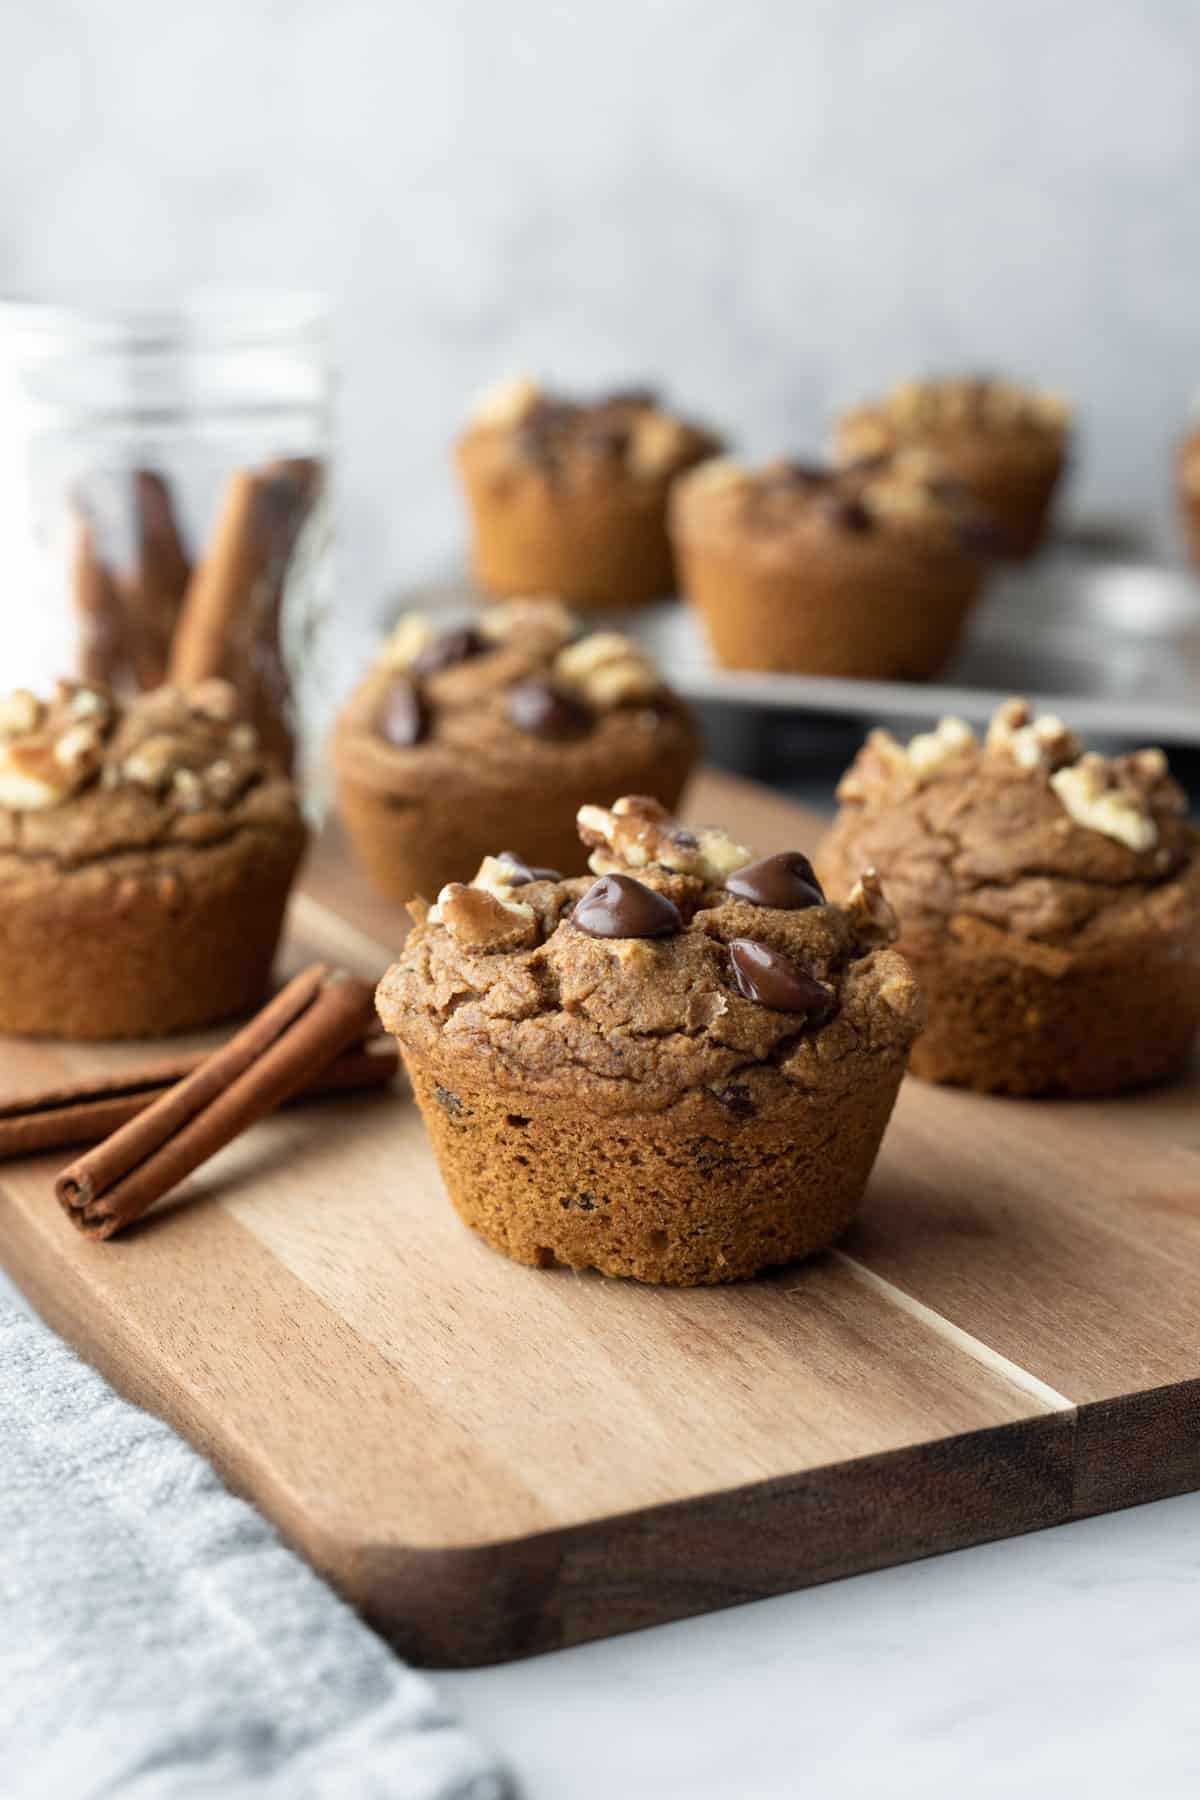 pumpkin spice muffins with walnuts and chocolate chips on a wood board.